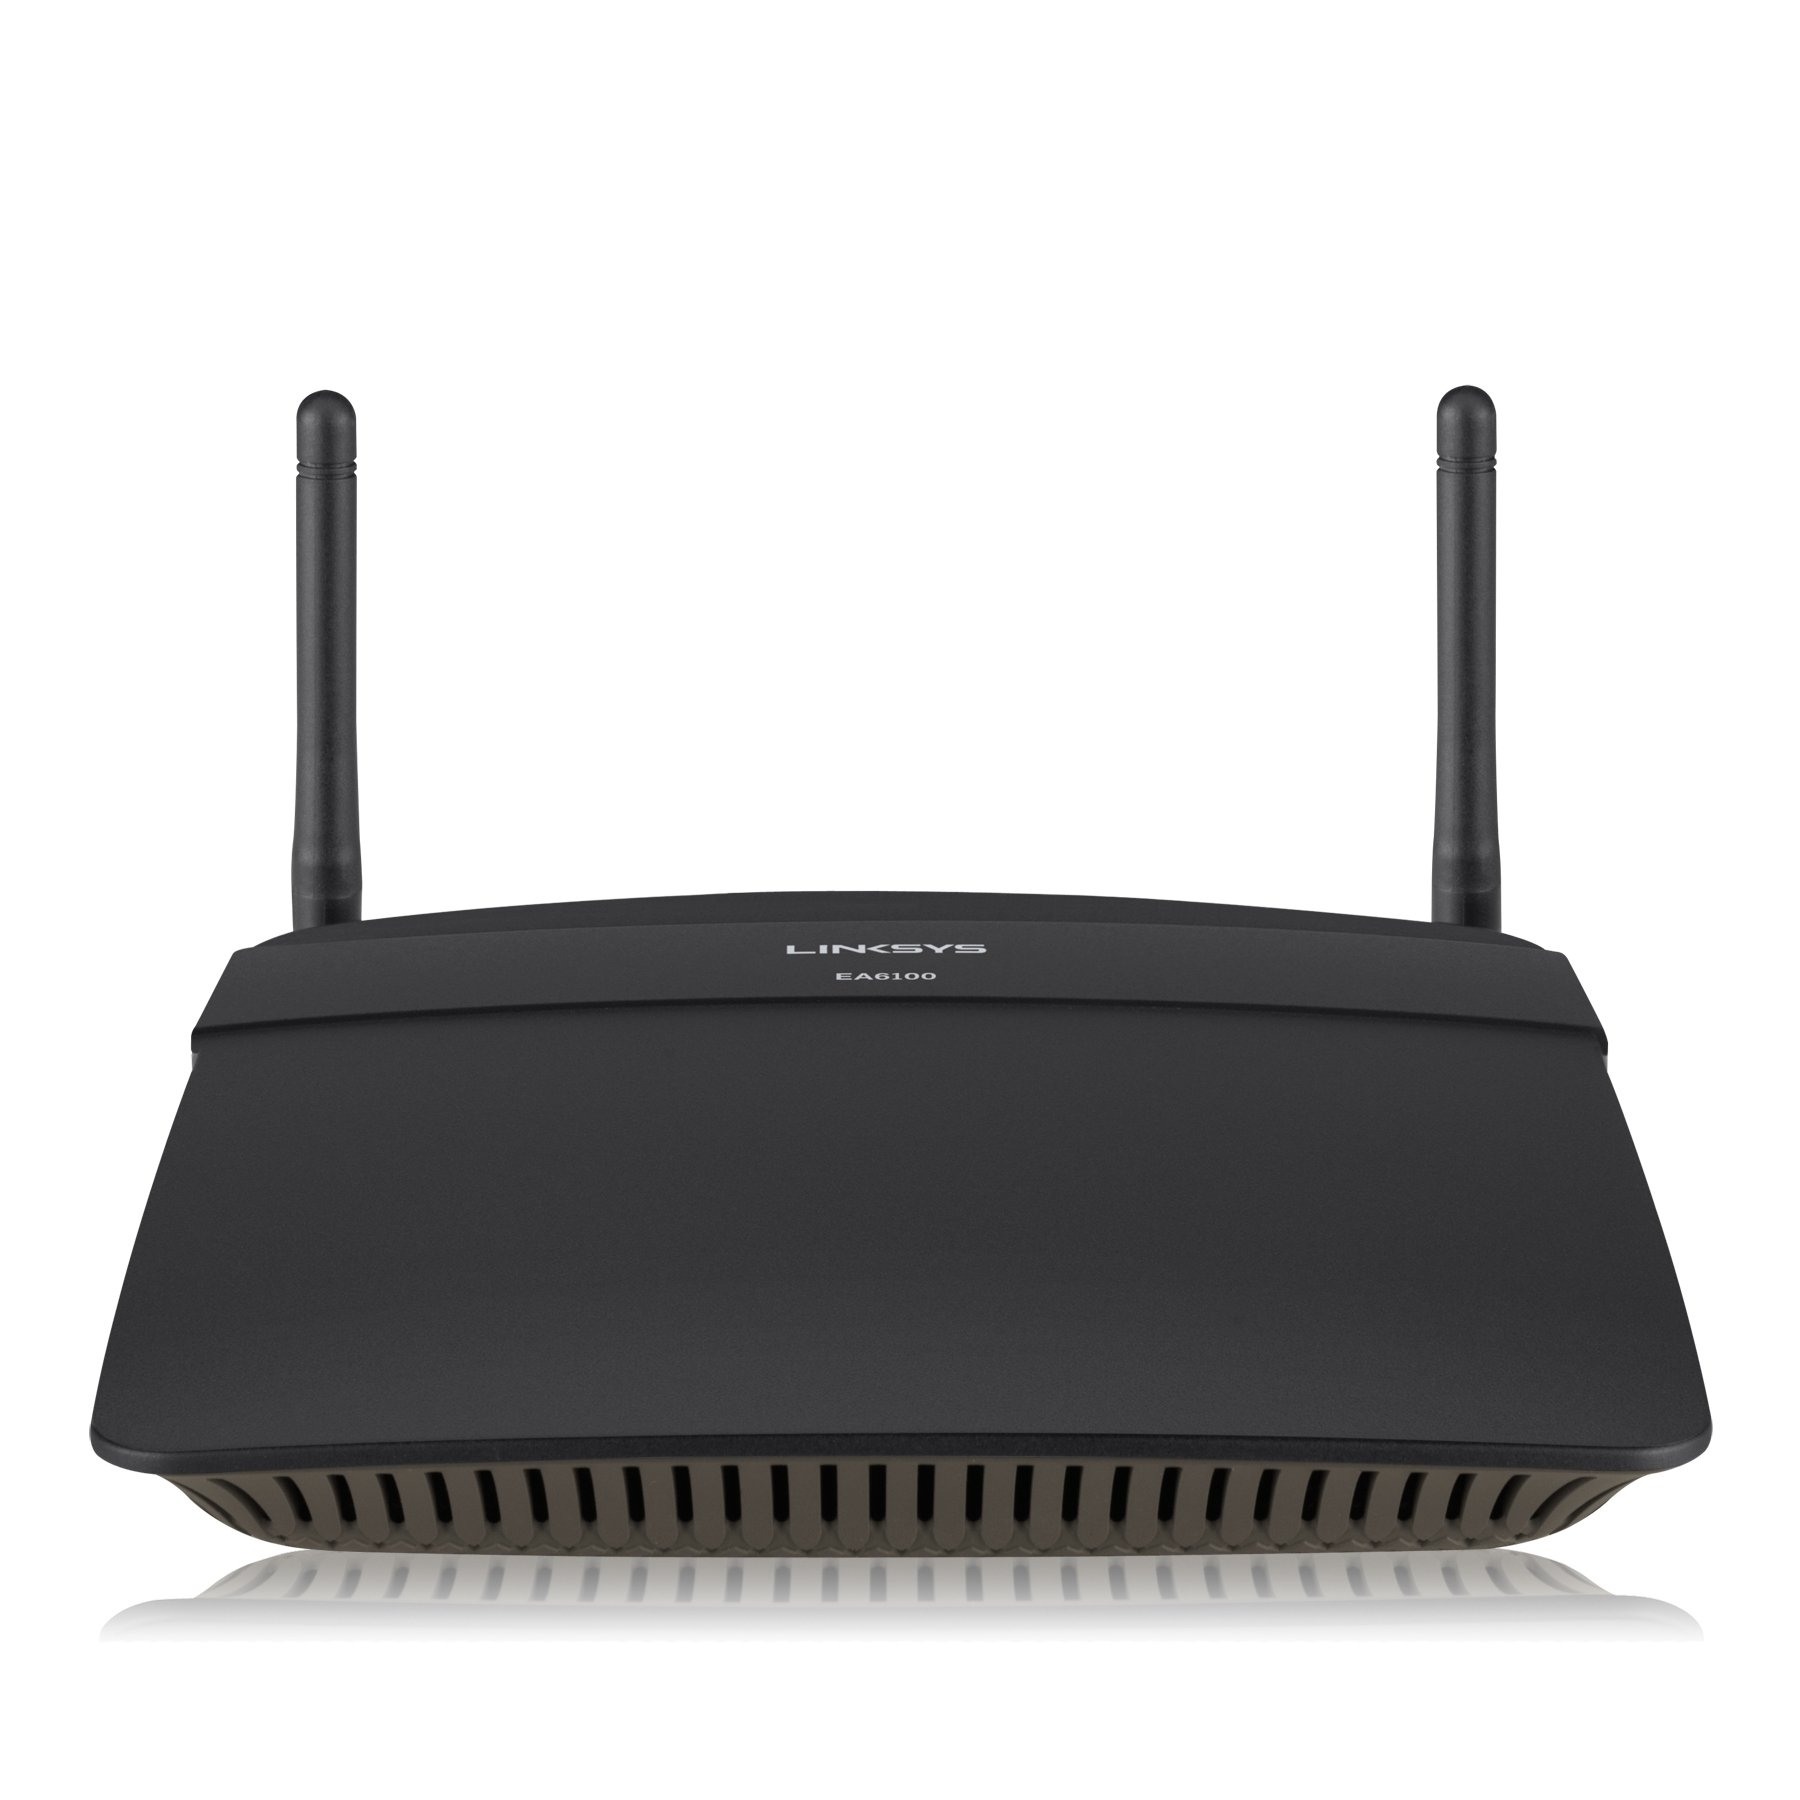 Linksys AC1200 Wi-Fi Wireless Dual-Band+ Router, Smart Wi-Fi App Enabled to Control Your Network from Anywhere (EA6100) by Linksys